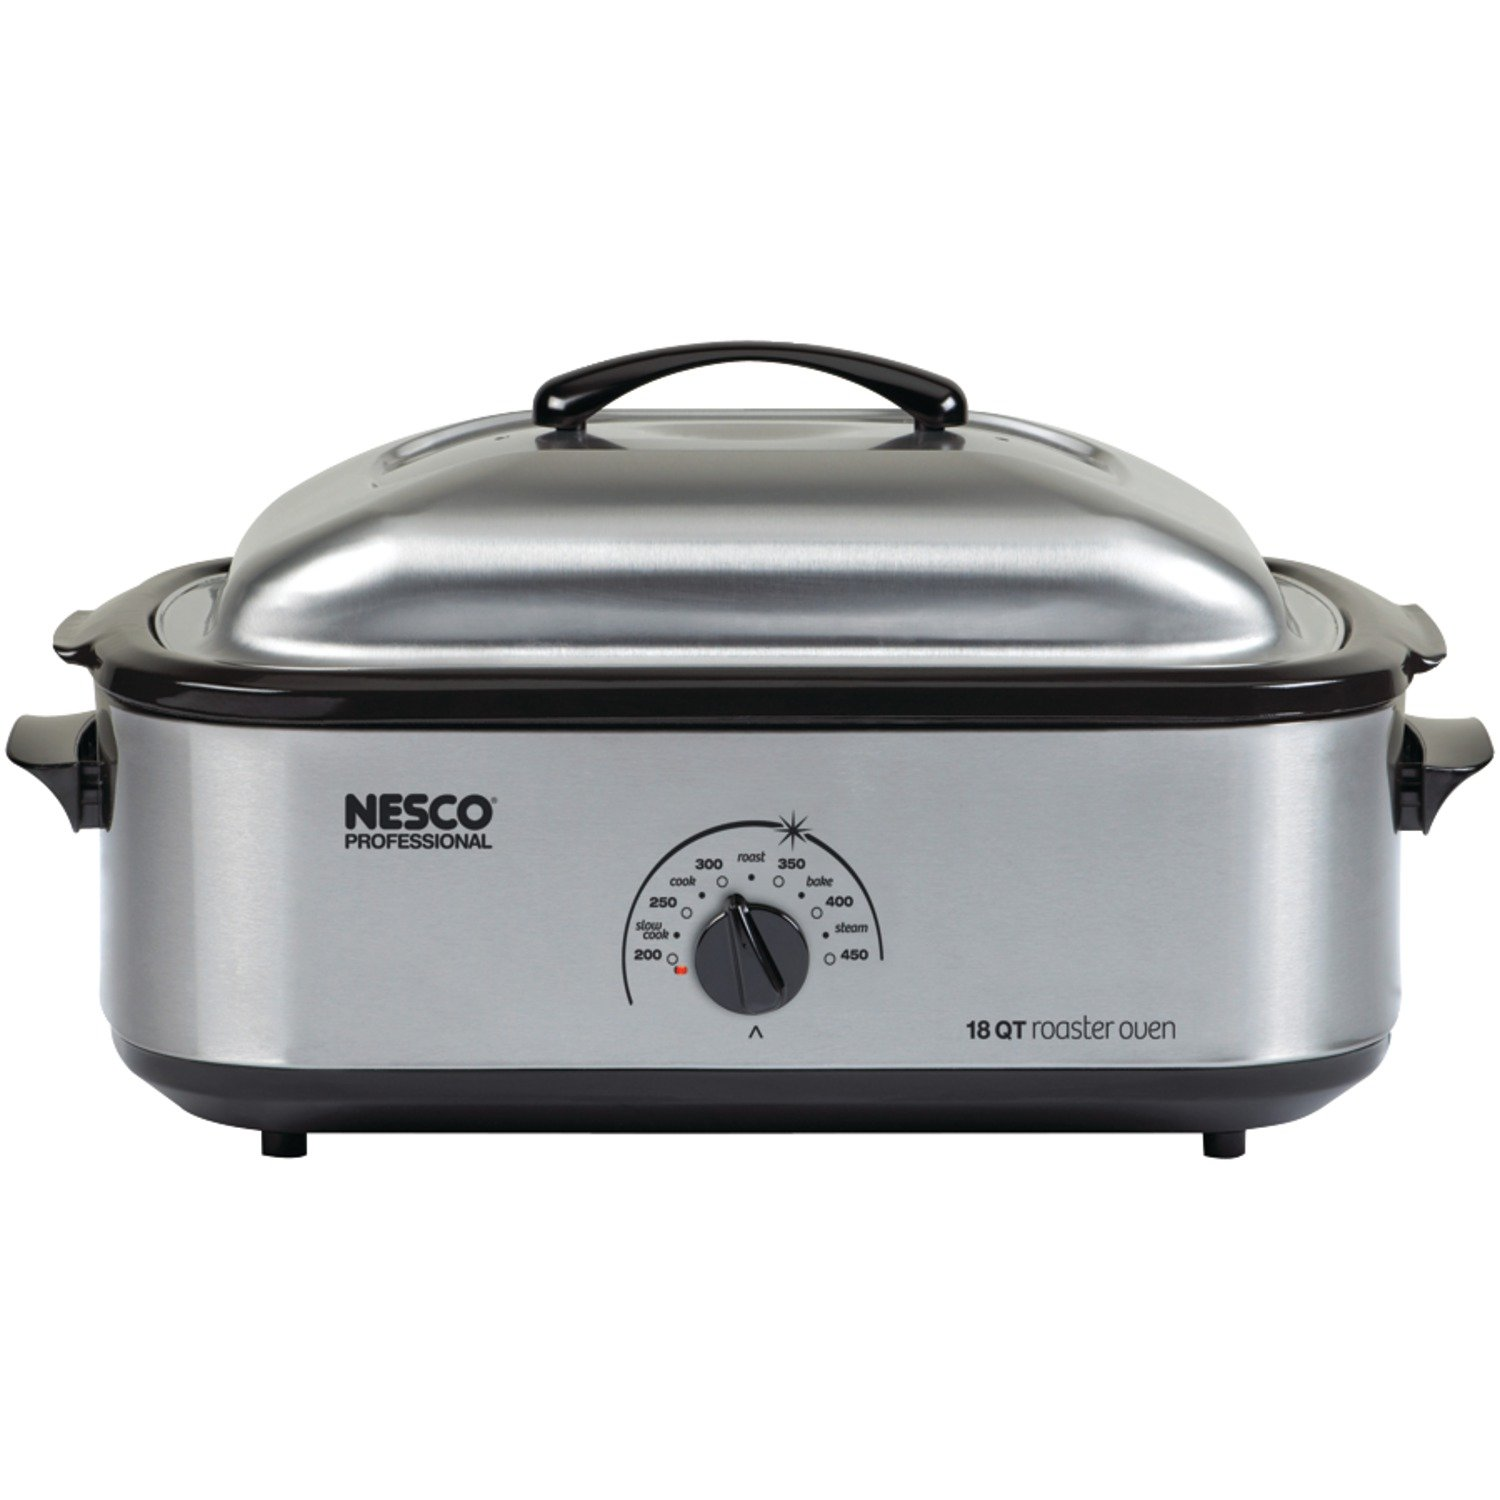 NESCO 481825PR, Roaster Oven with Porcelain Cookwell, Stainless Steel, 18 quart, 1425 watts